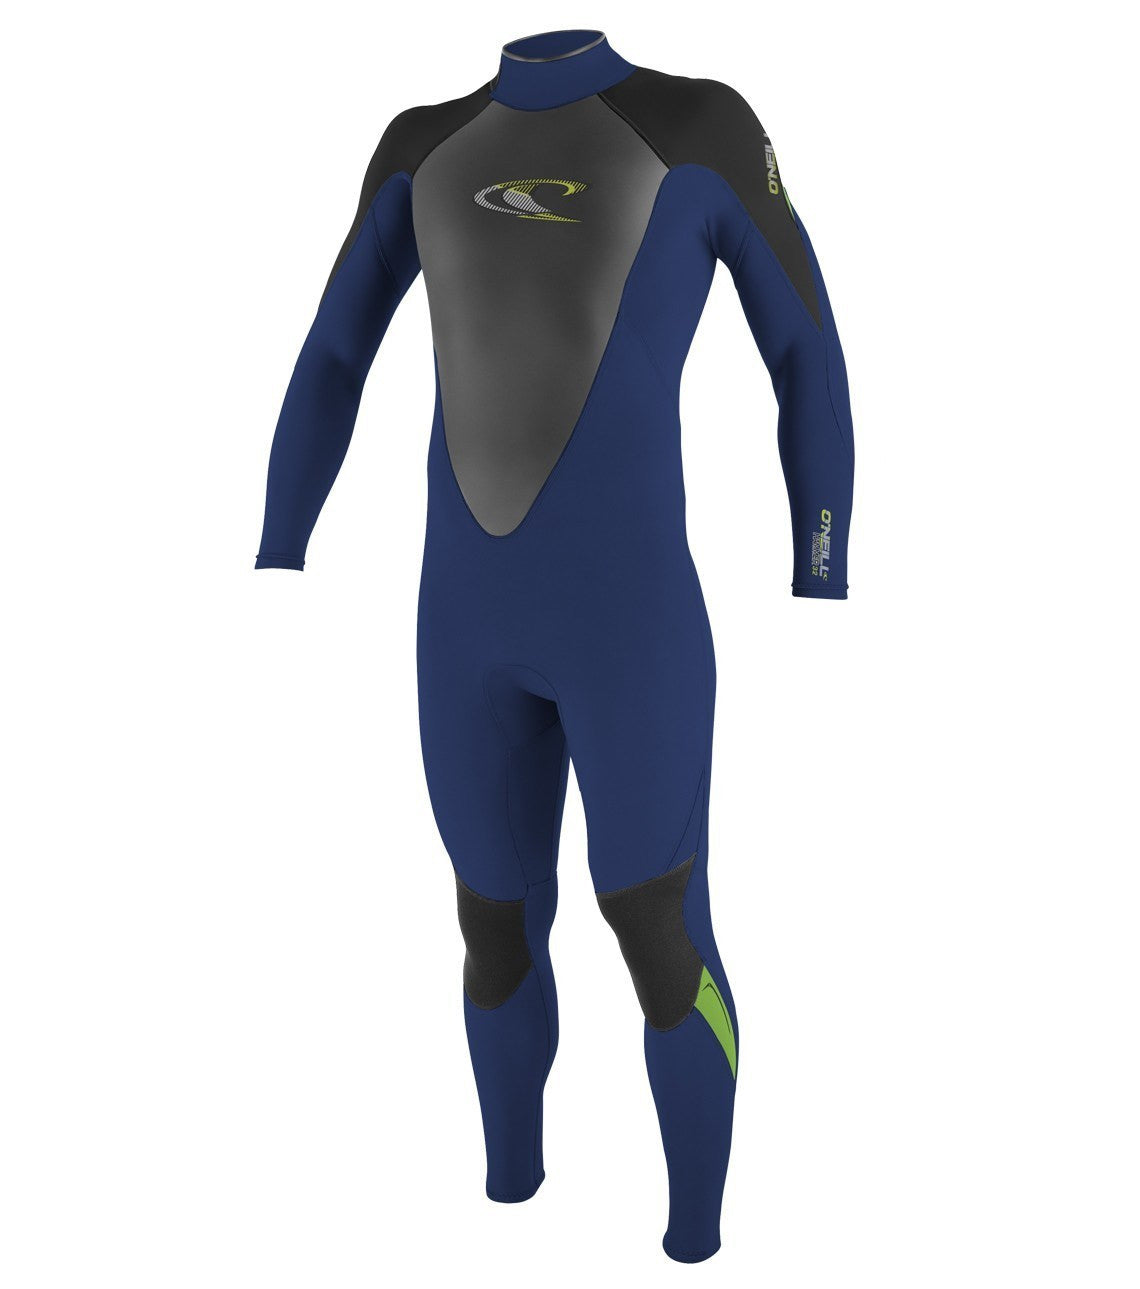 O'neill wetsuits are a top seller and they use research to innovate new ideas